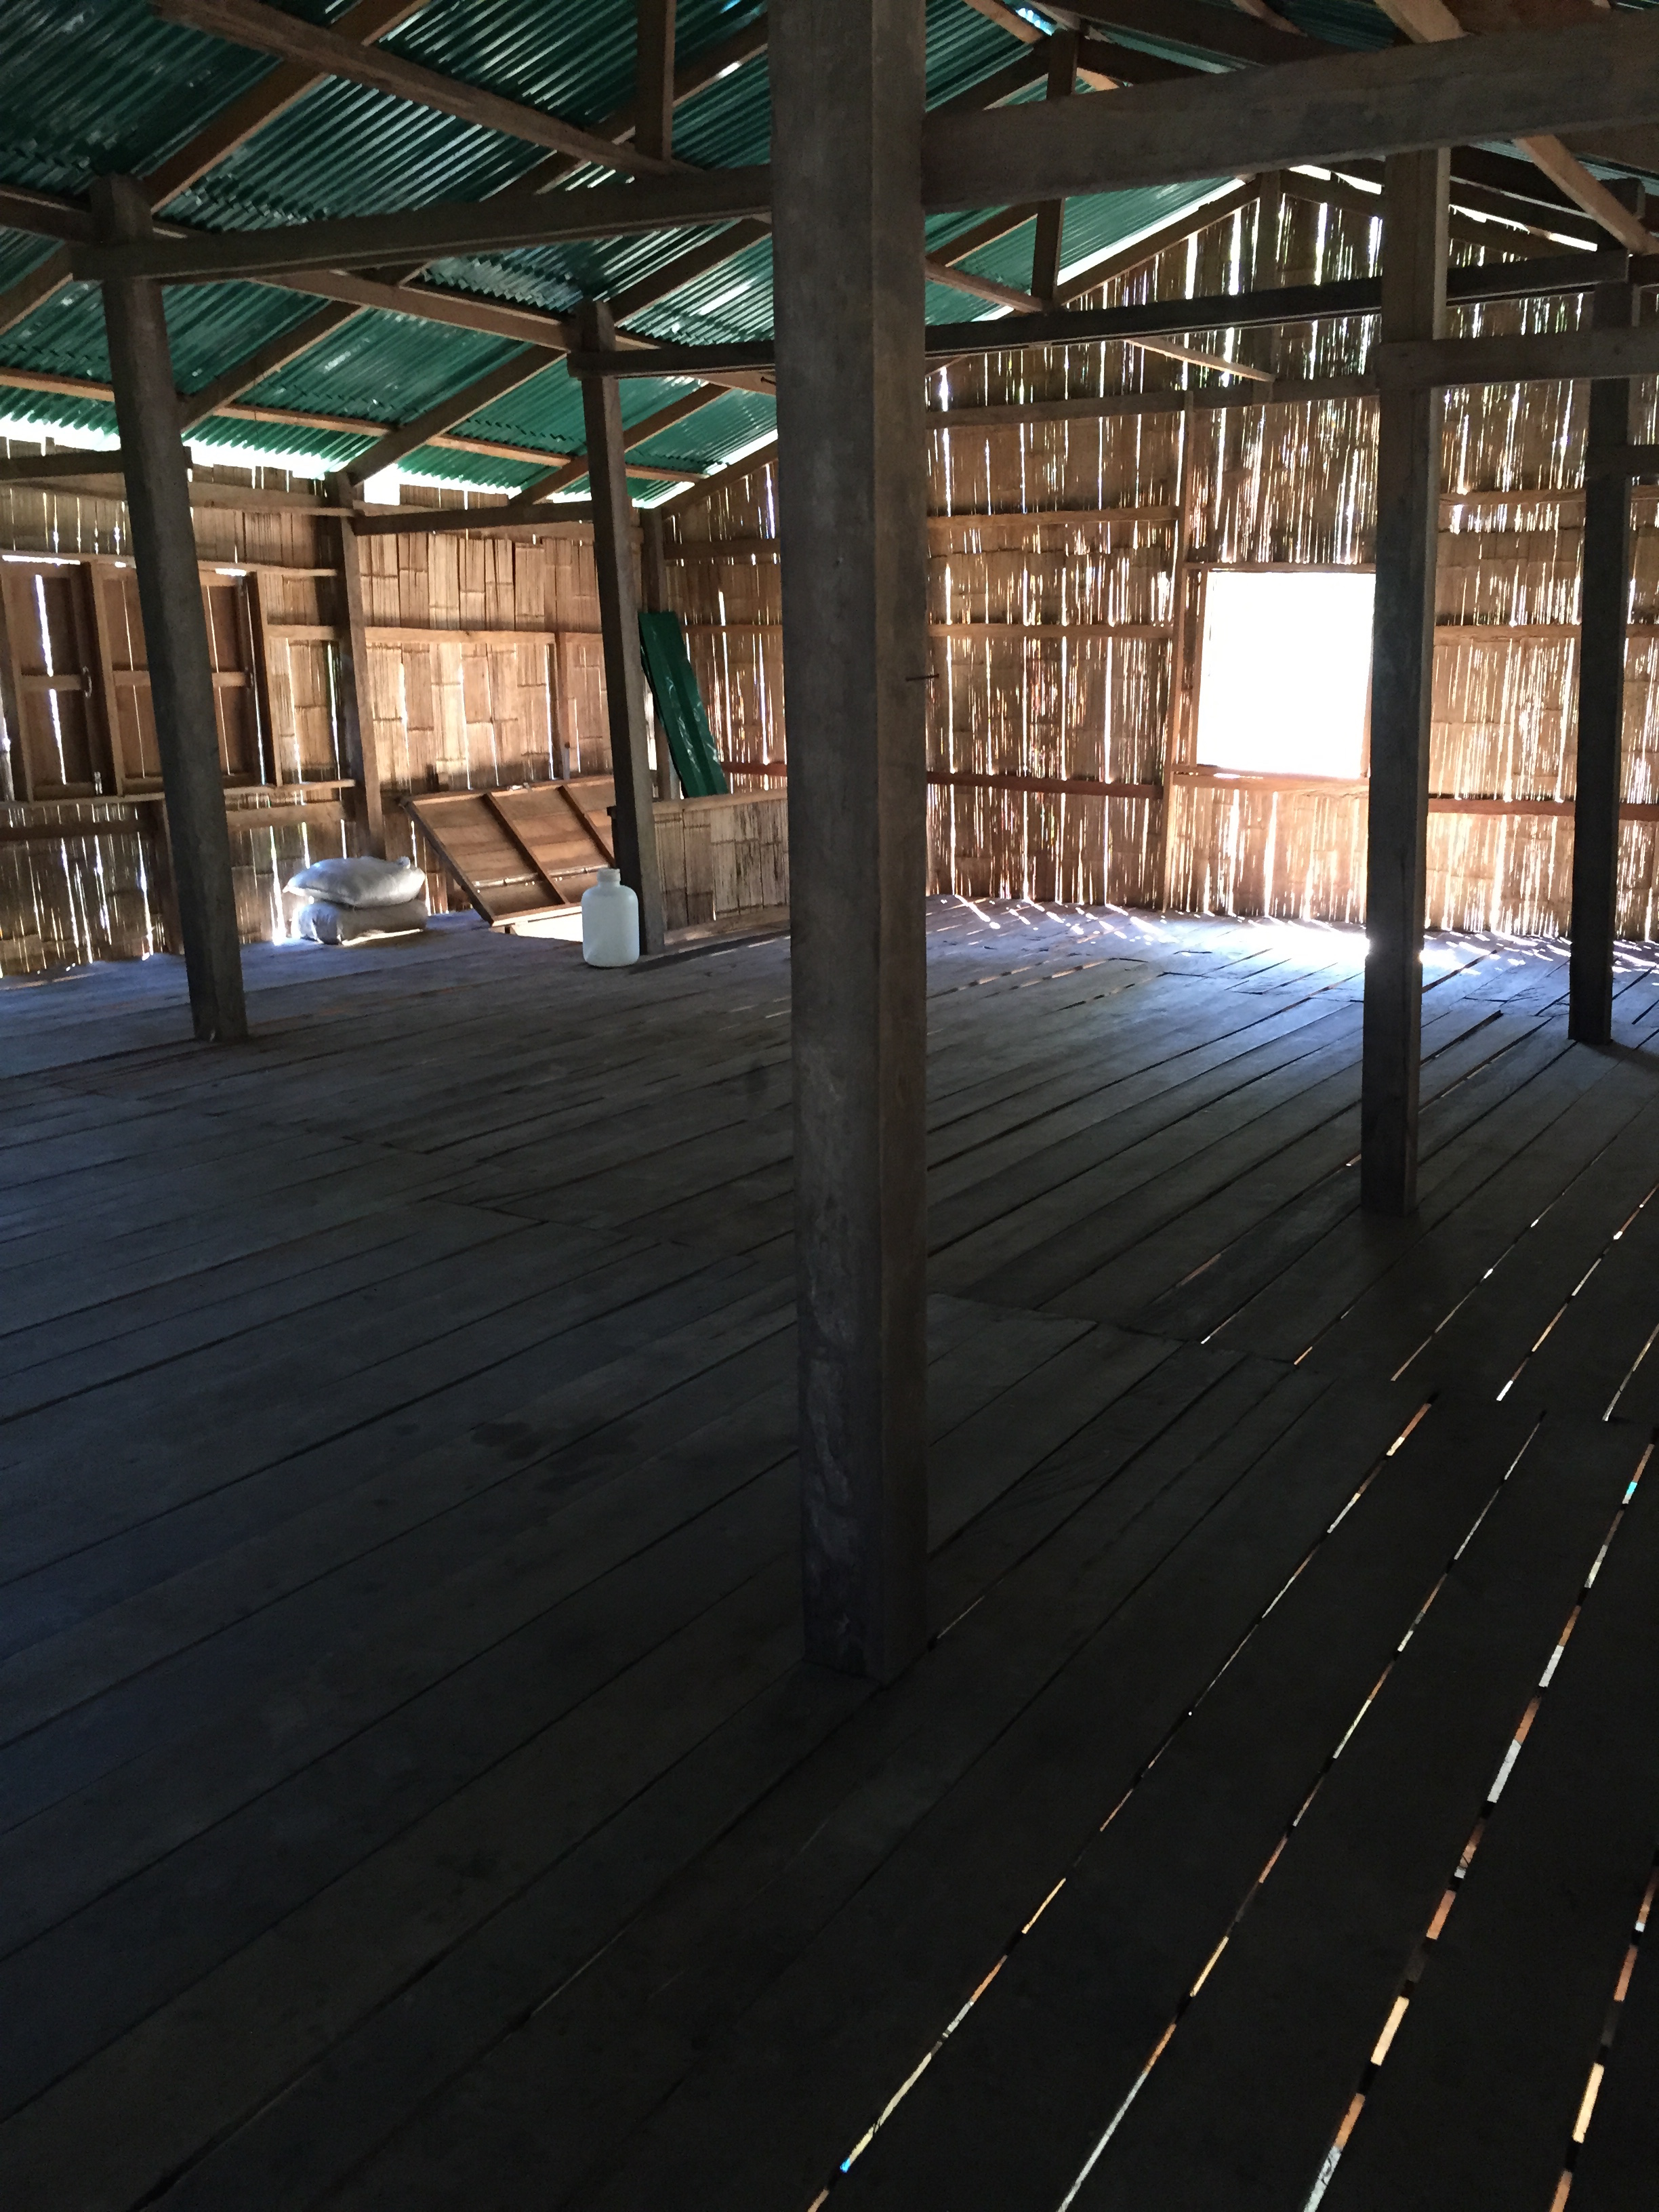 Inside the new large hut/home Ga-Bleu has already built.